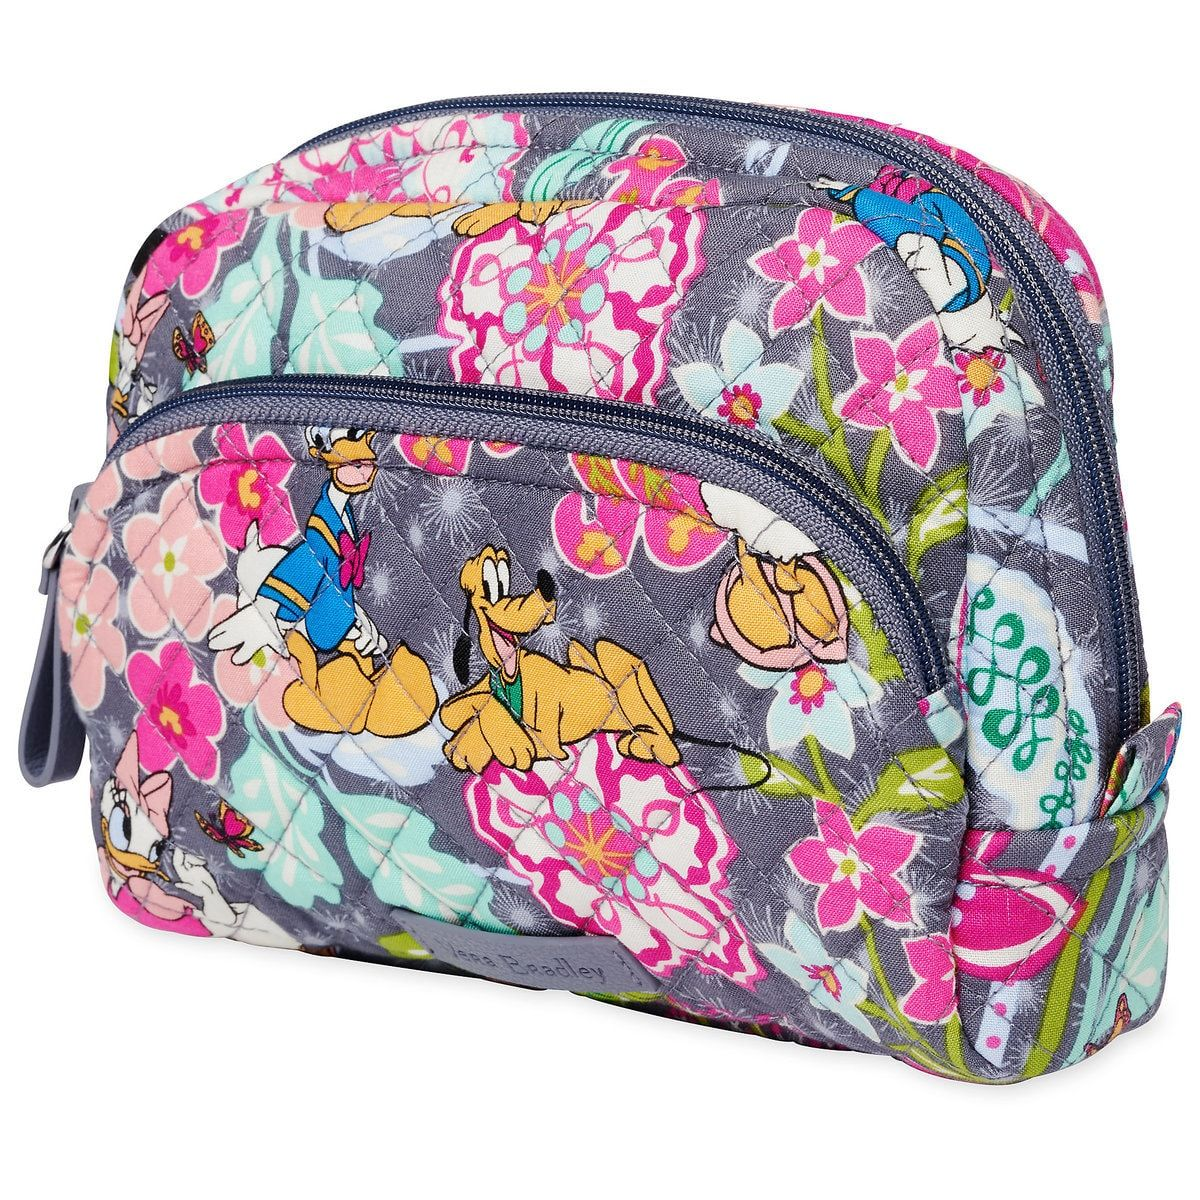 Mickey Mouse and Friends Medium Cosmetic Bag by Vera